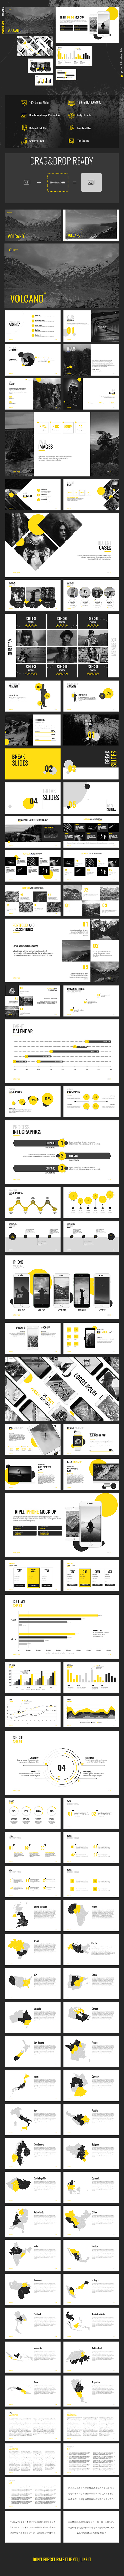 Volcano yellow marketing powerpoint template by bluepointdesign volcano yellow marketing powerpoint template creative powerpoint templates toneelgroepblik Gallery